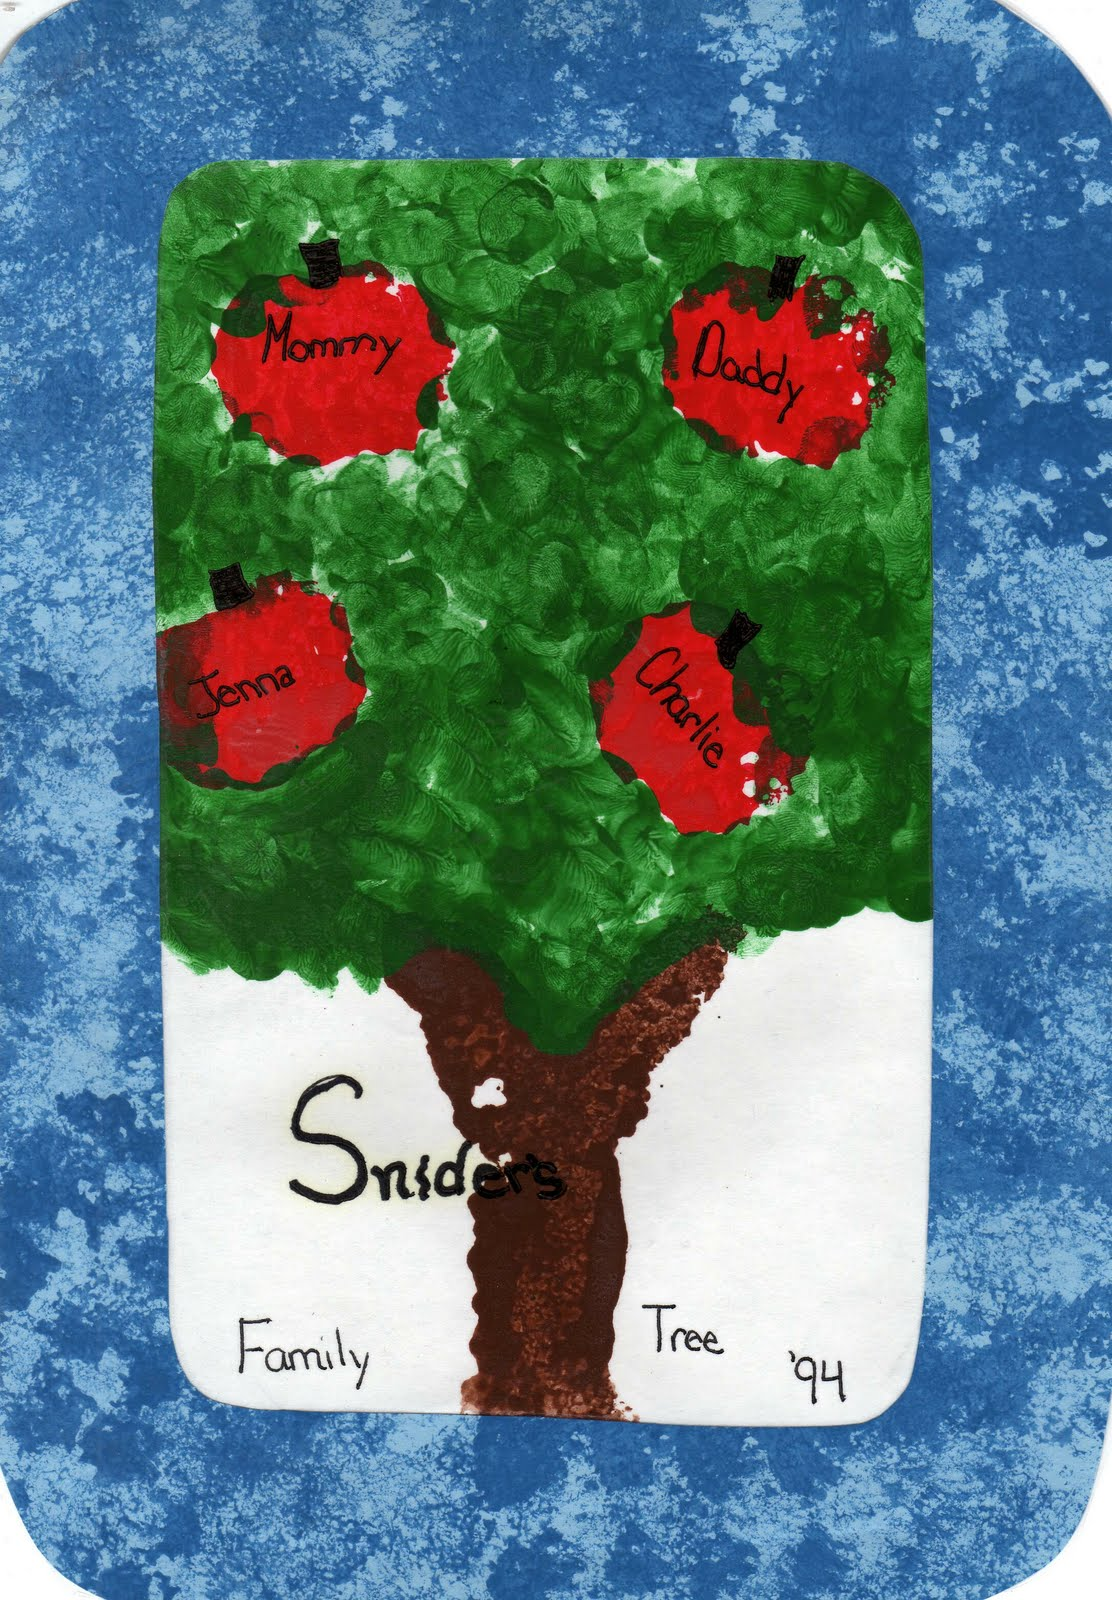 Family Tree for Elementary Students http://okscribbler.blogspot.com/2010/04/mothers-day-family-tree.html